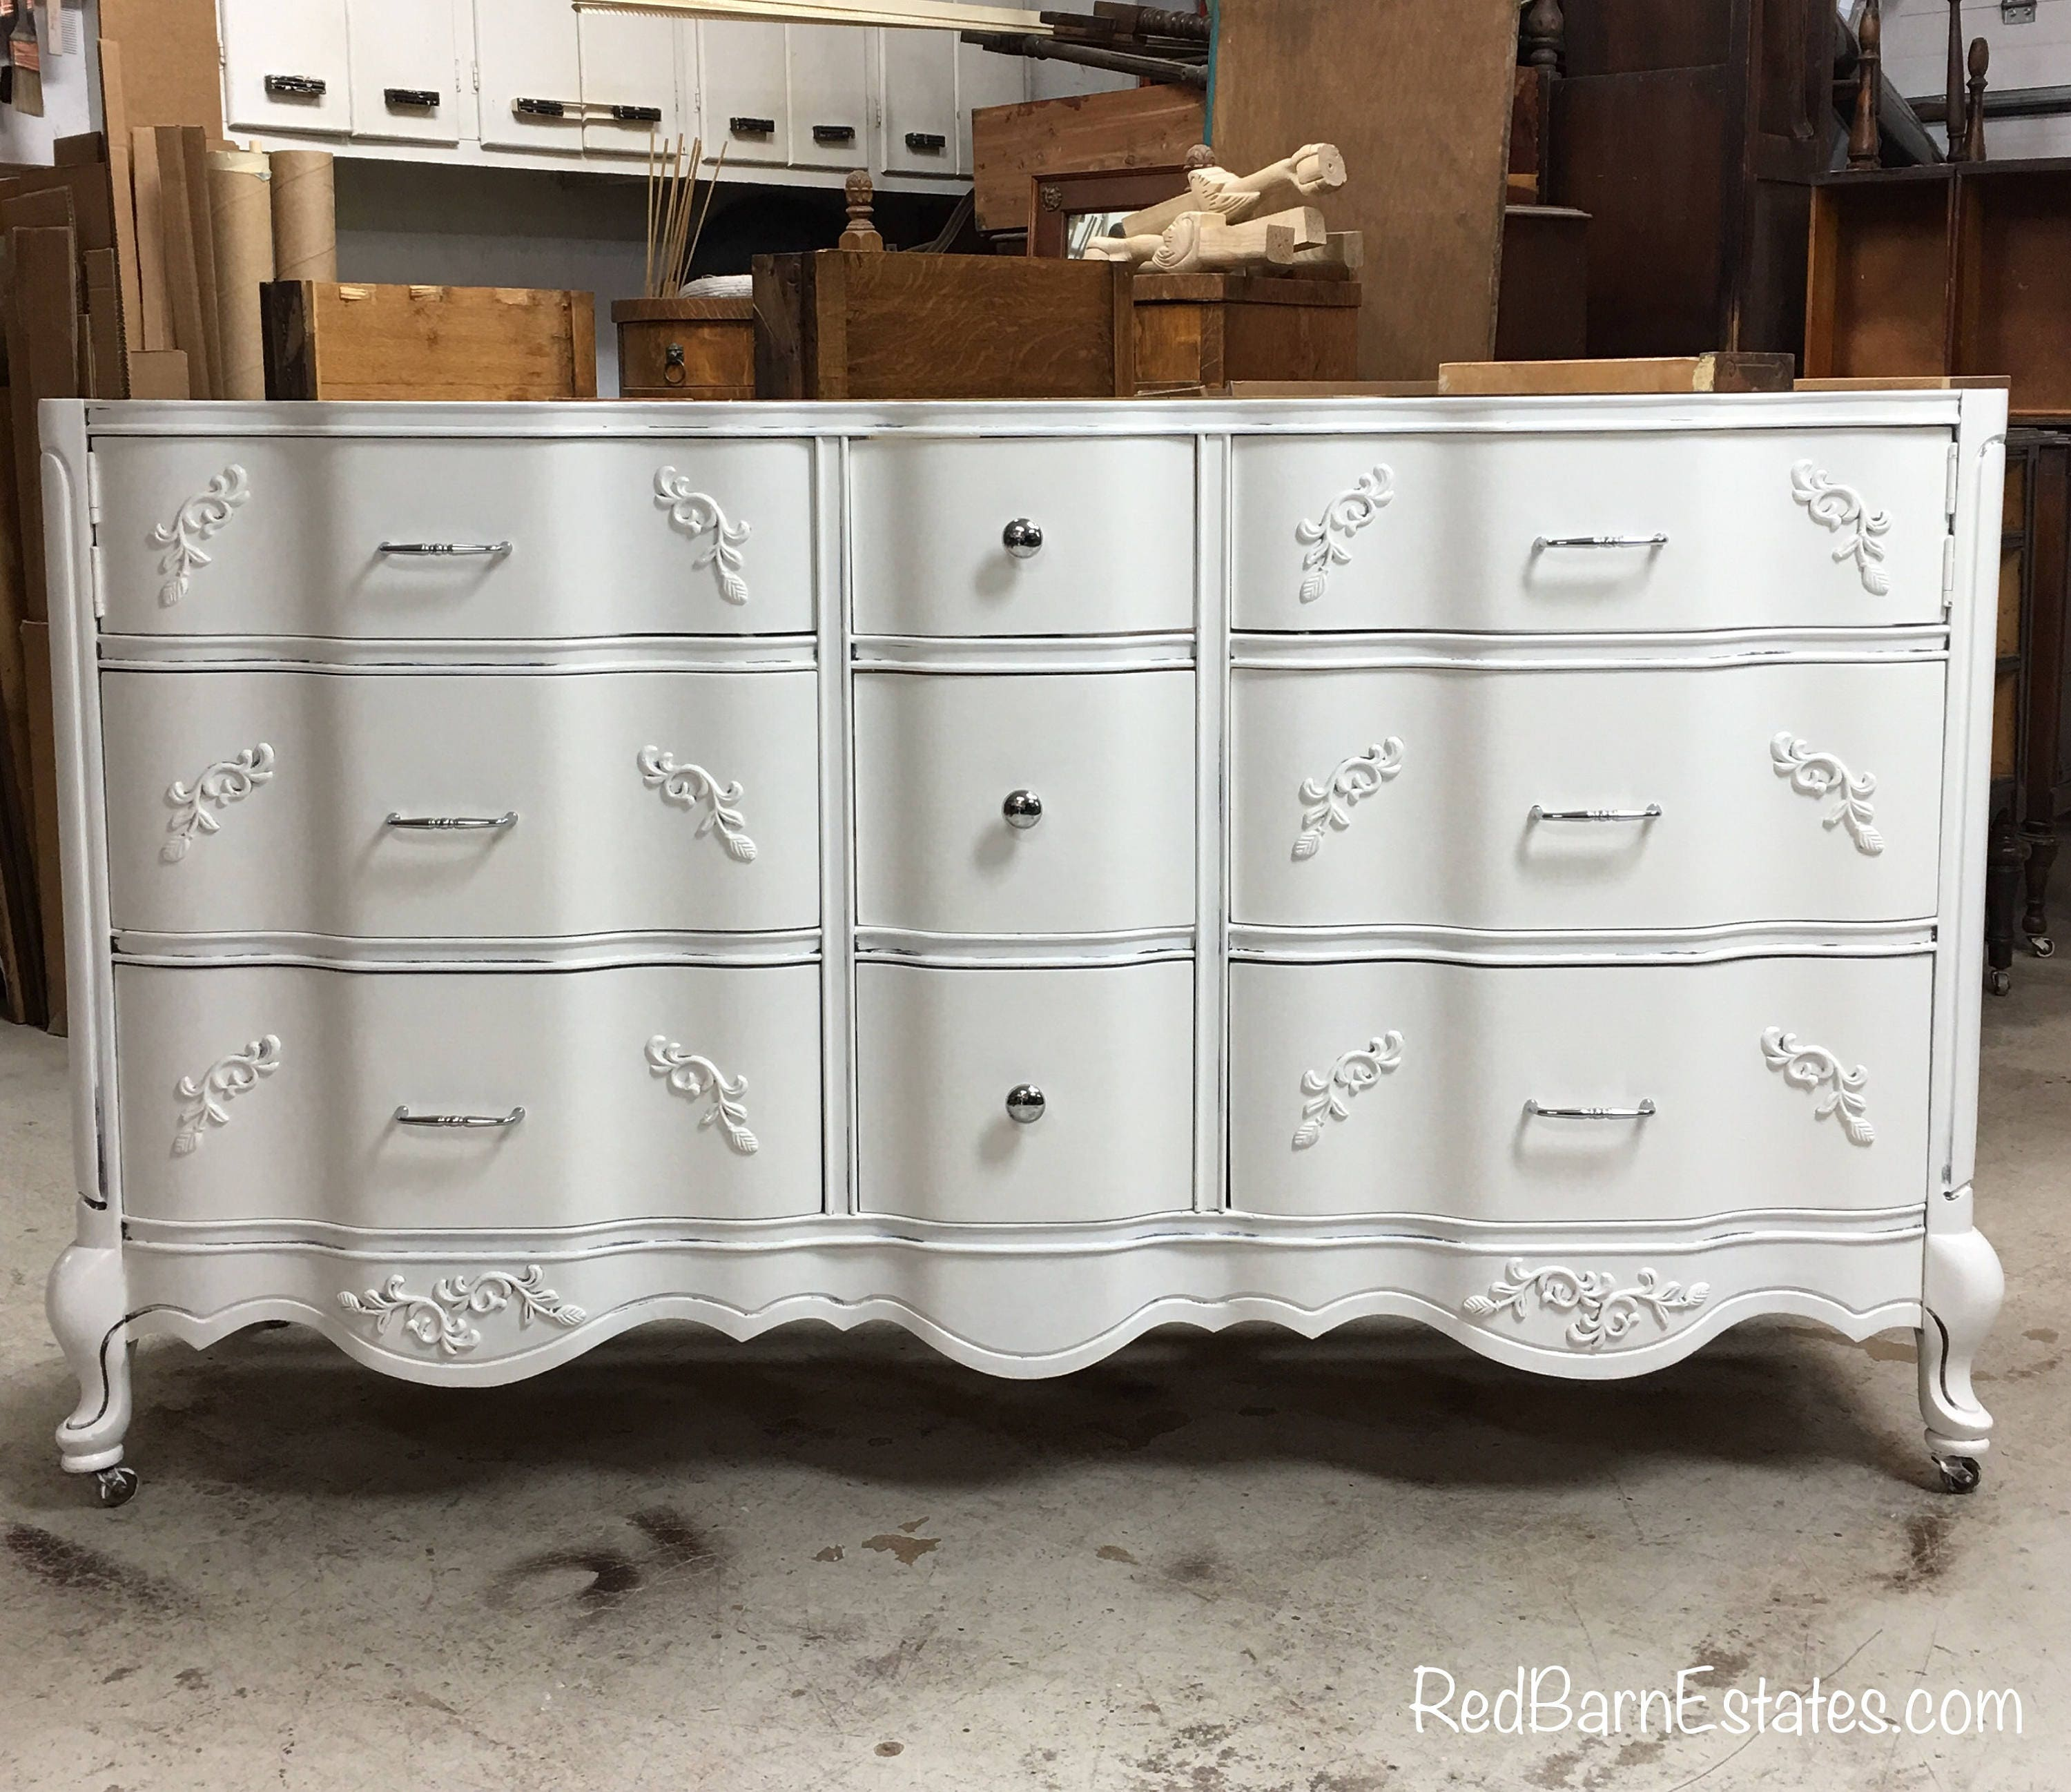 Bathroom vanity cabinet we custom convert from vintage French provincial bathroom vanities